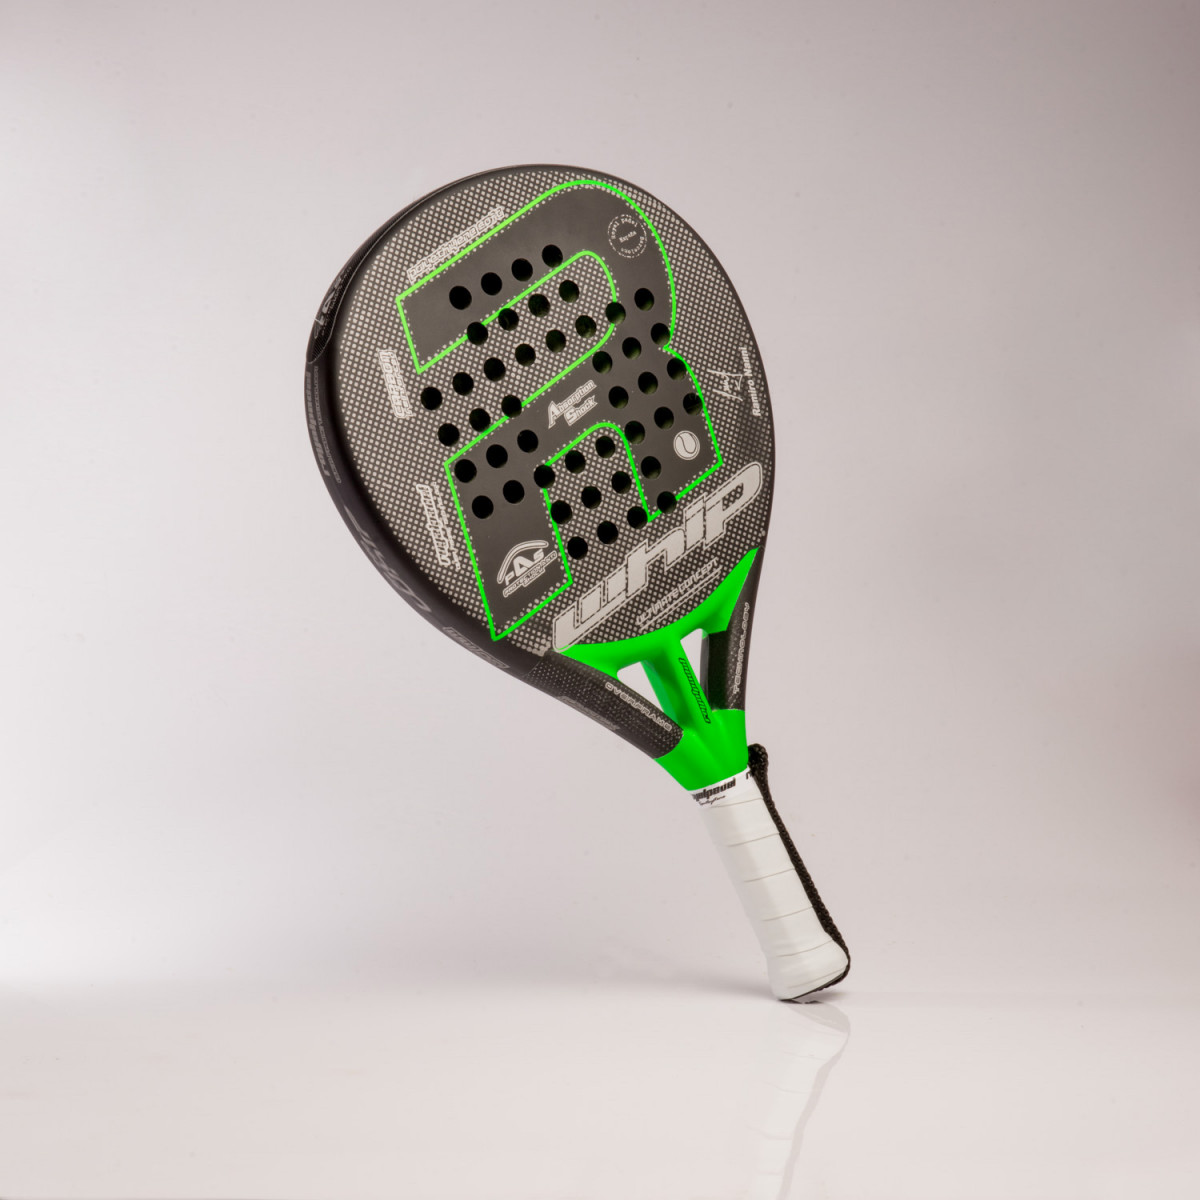 PALETA ROYAL PADEL WHIP FOAM 38